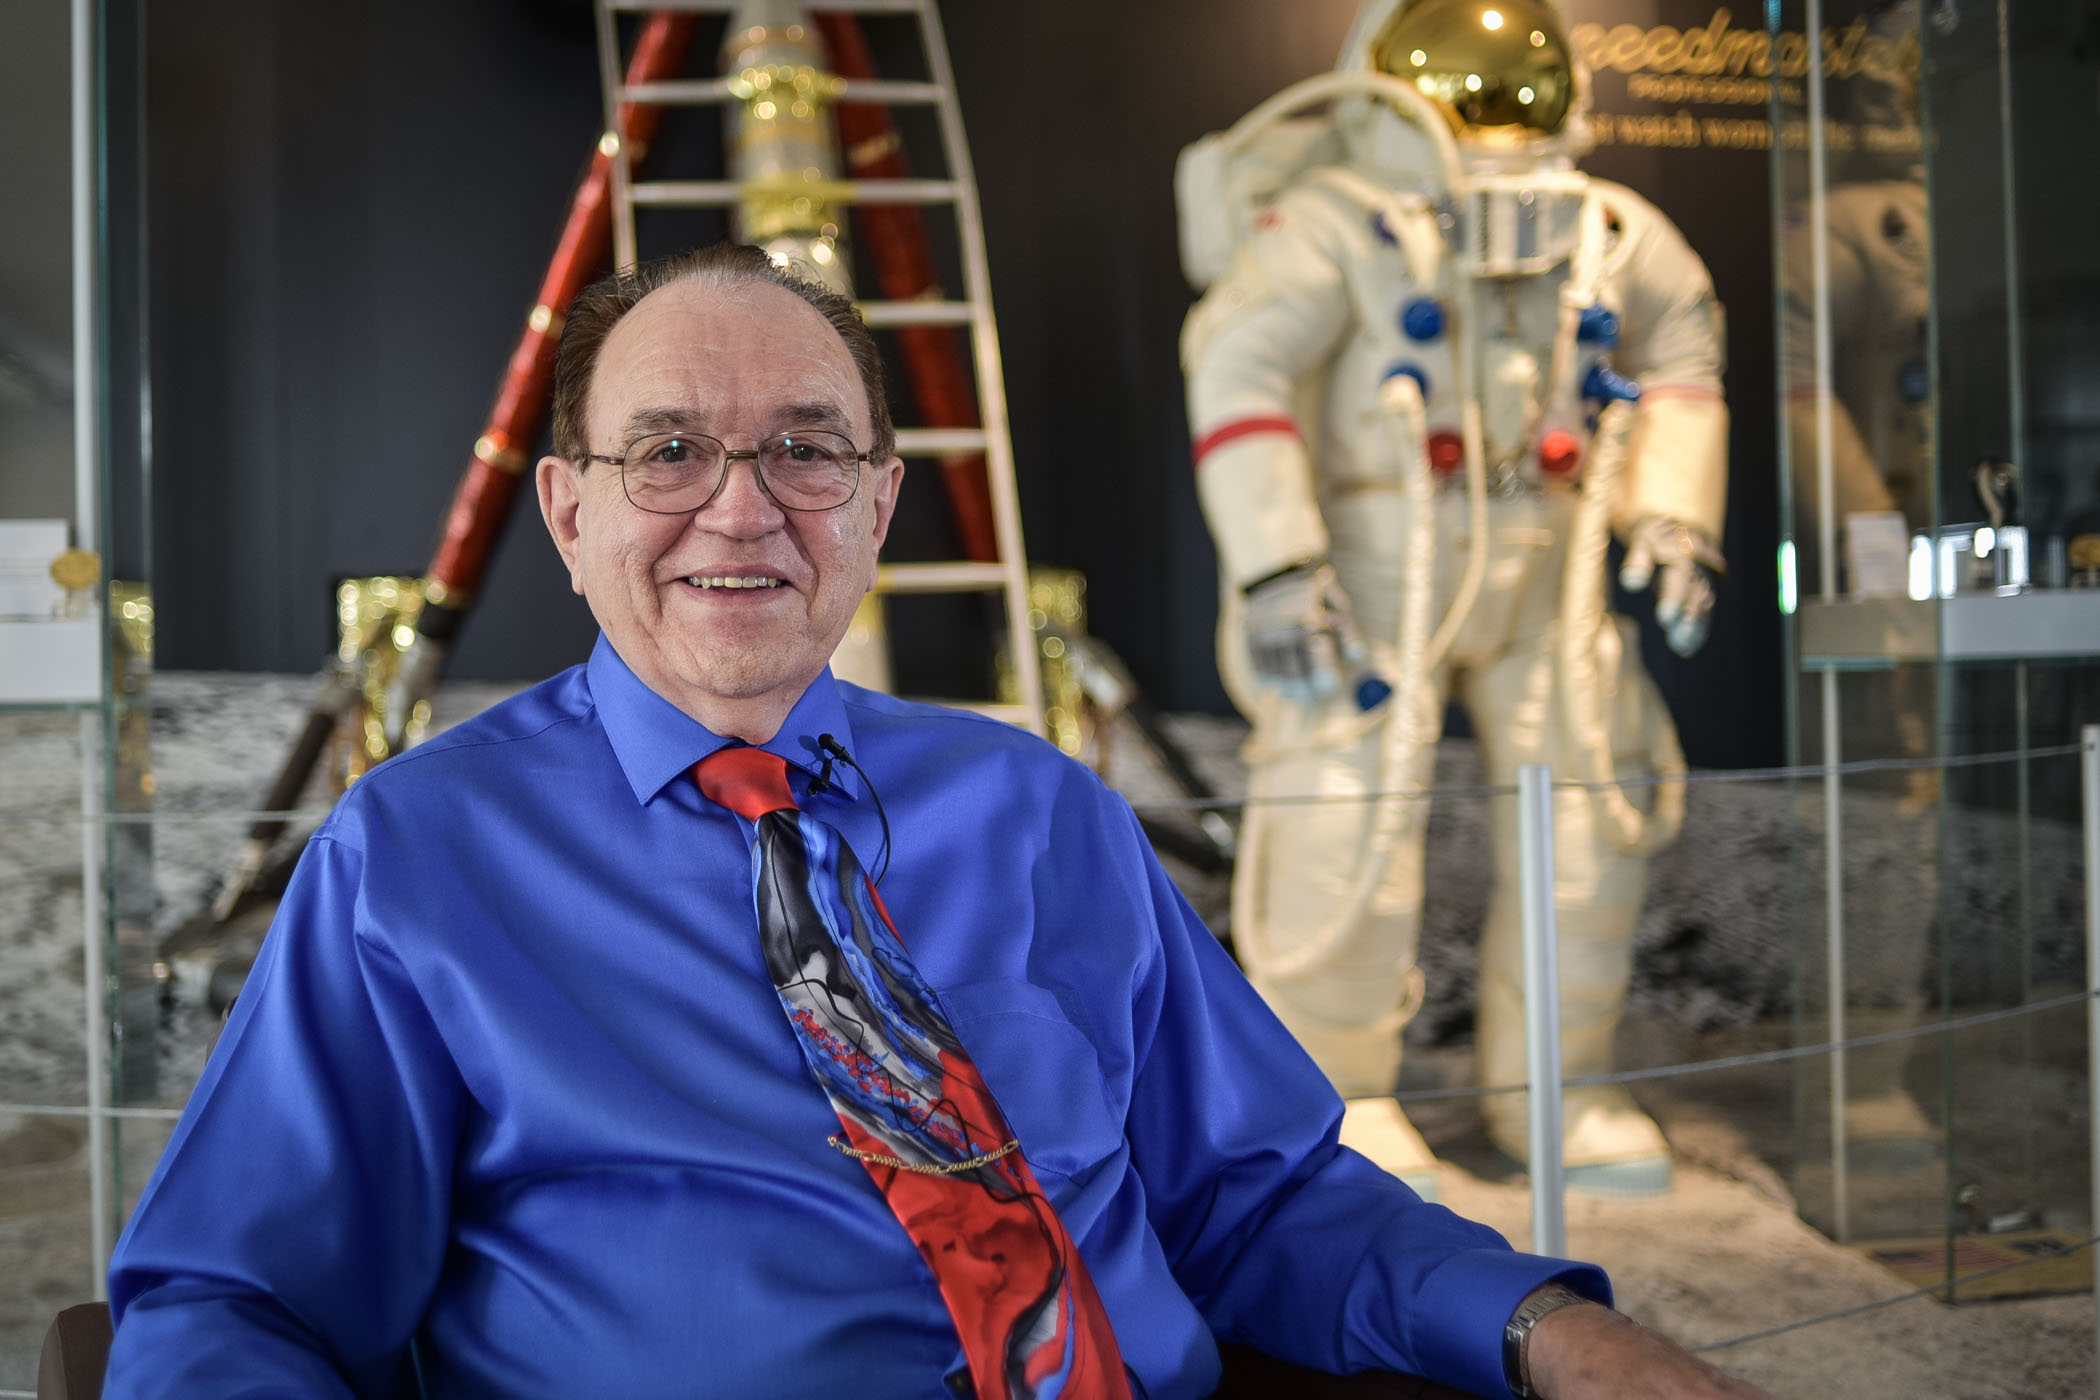 Moon Landing 50 - How The Omega Speedmaster Professional Became the Moonwatch By James H. Ragan NASA